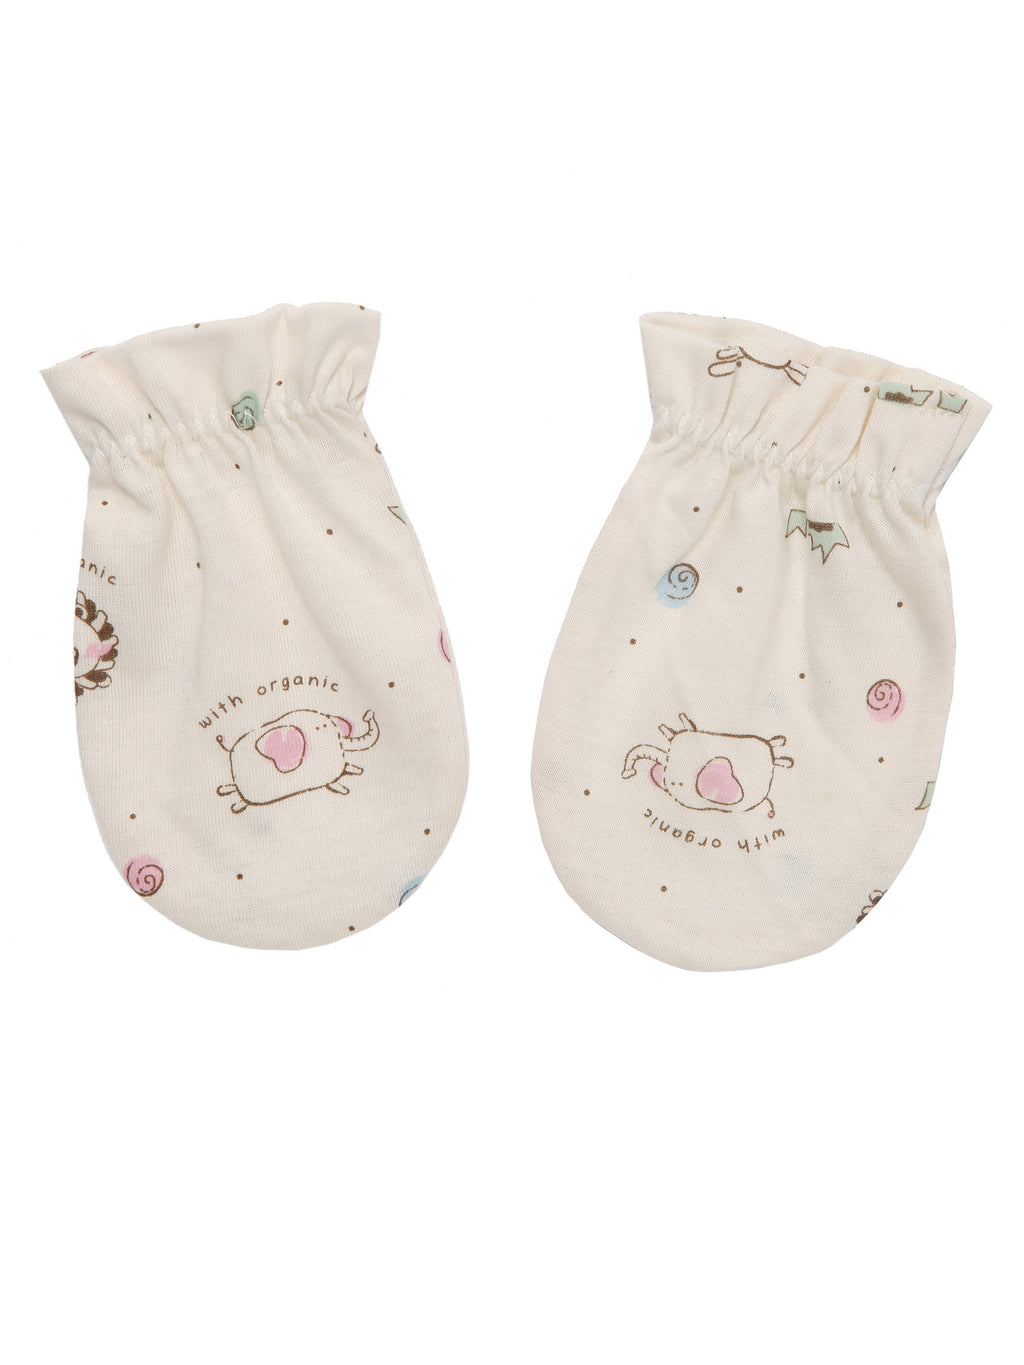 Newborn Infant Soft Mitten - HiOrganic